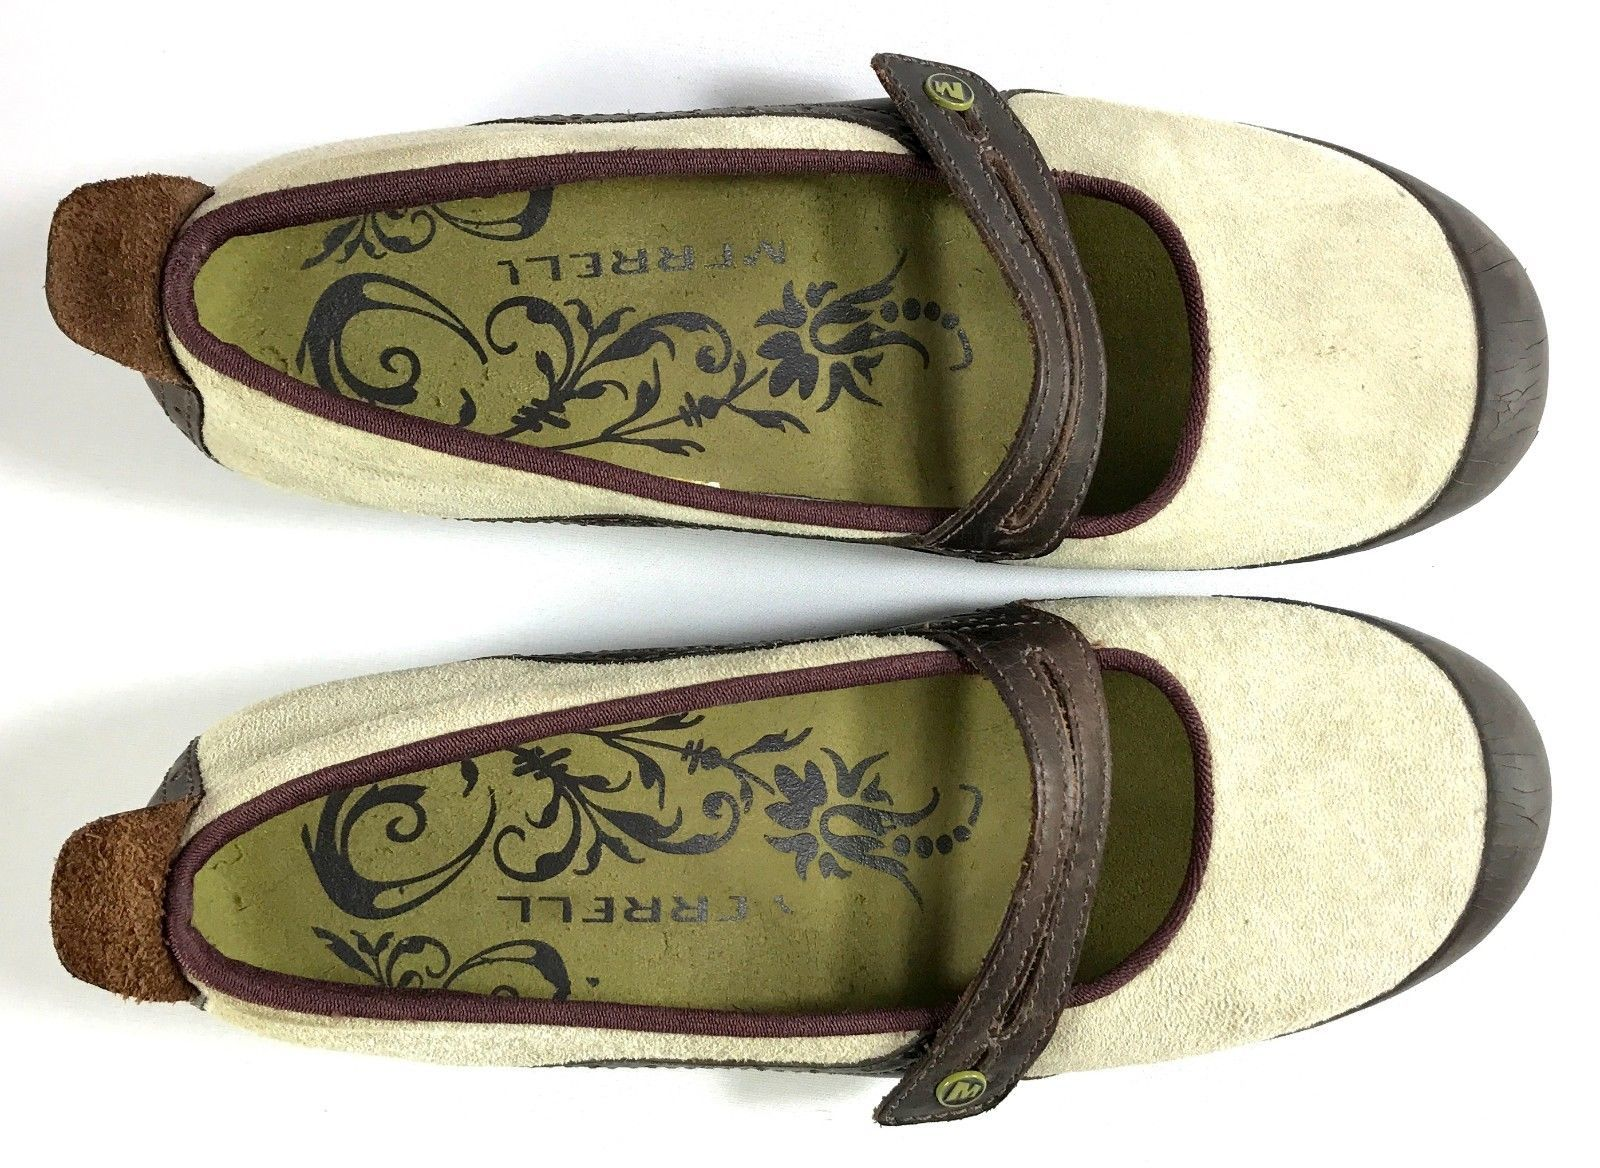 Merrell Mary Jane Shoes Womens Plaza Bandeau Size 9.5 Brown / Beige